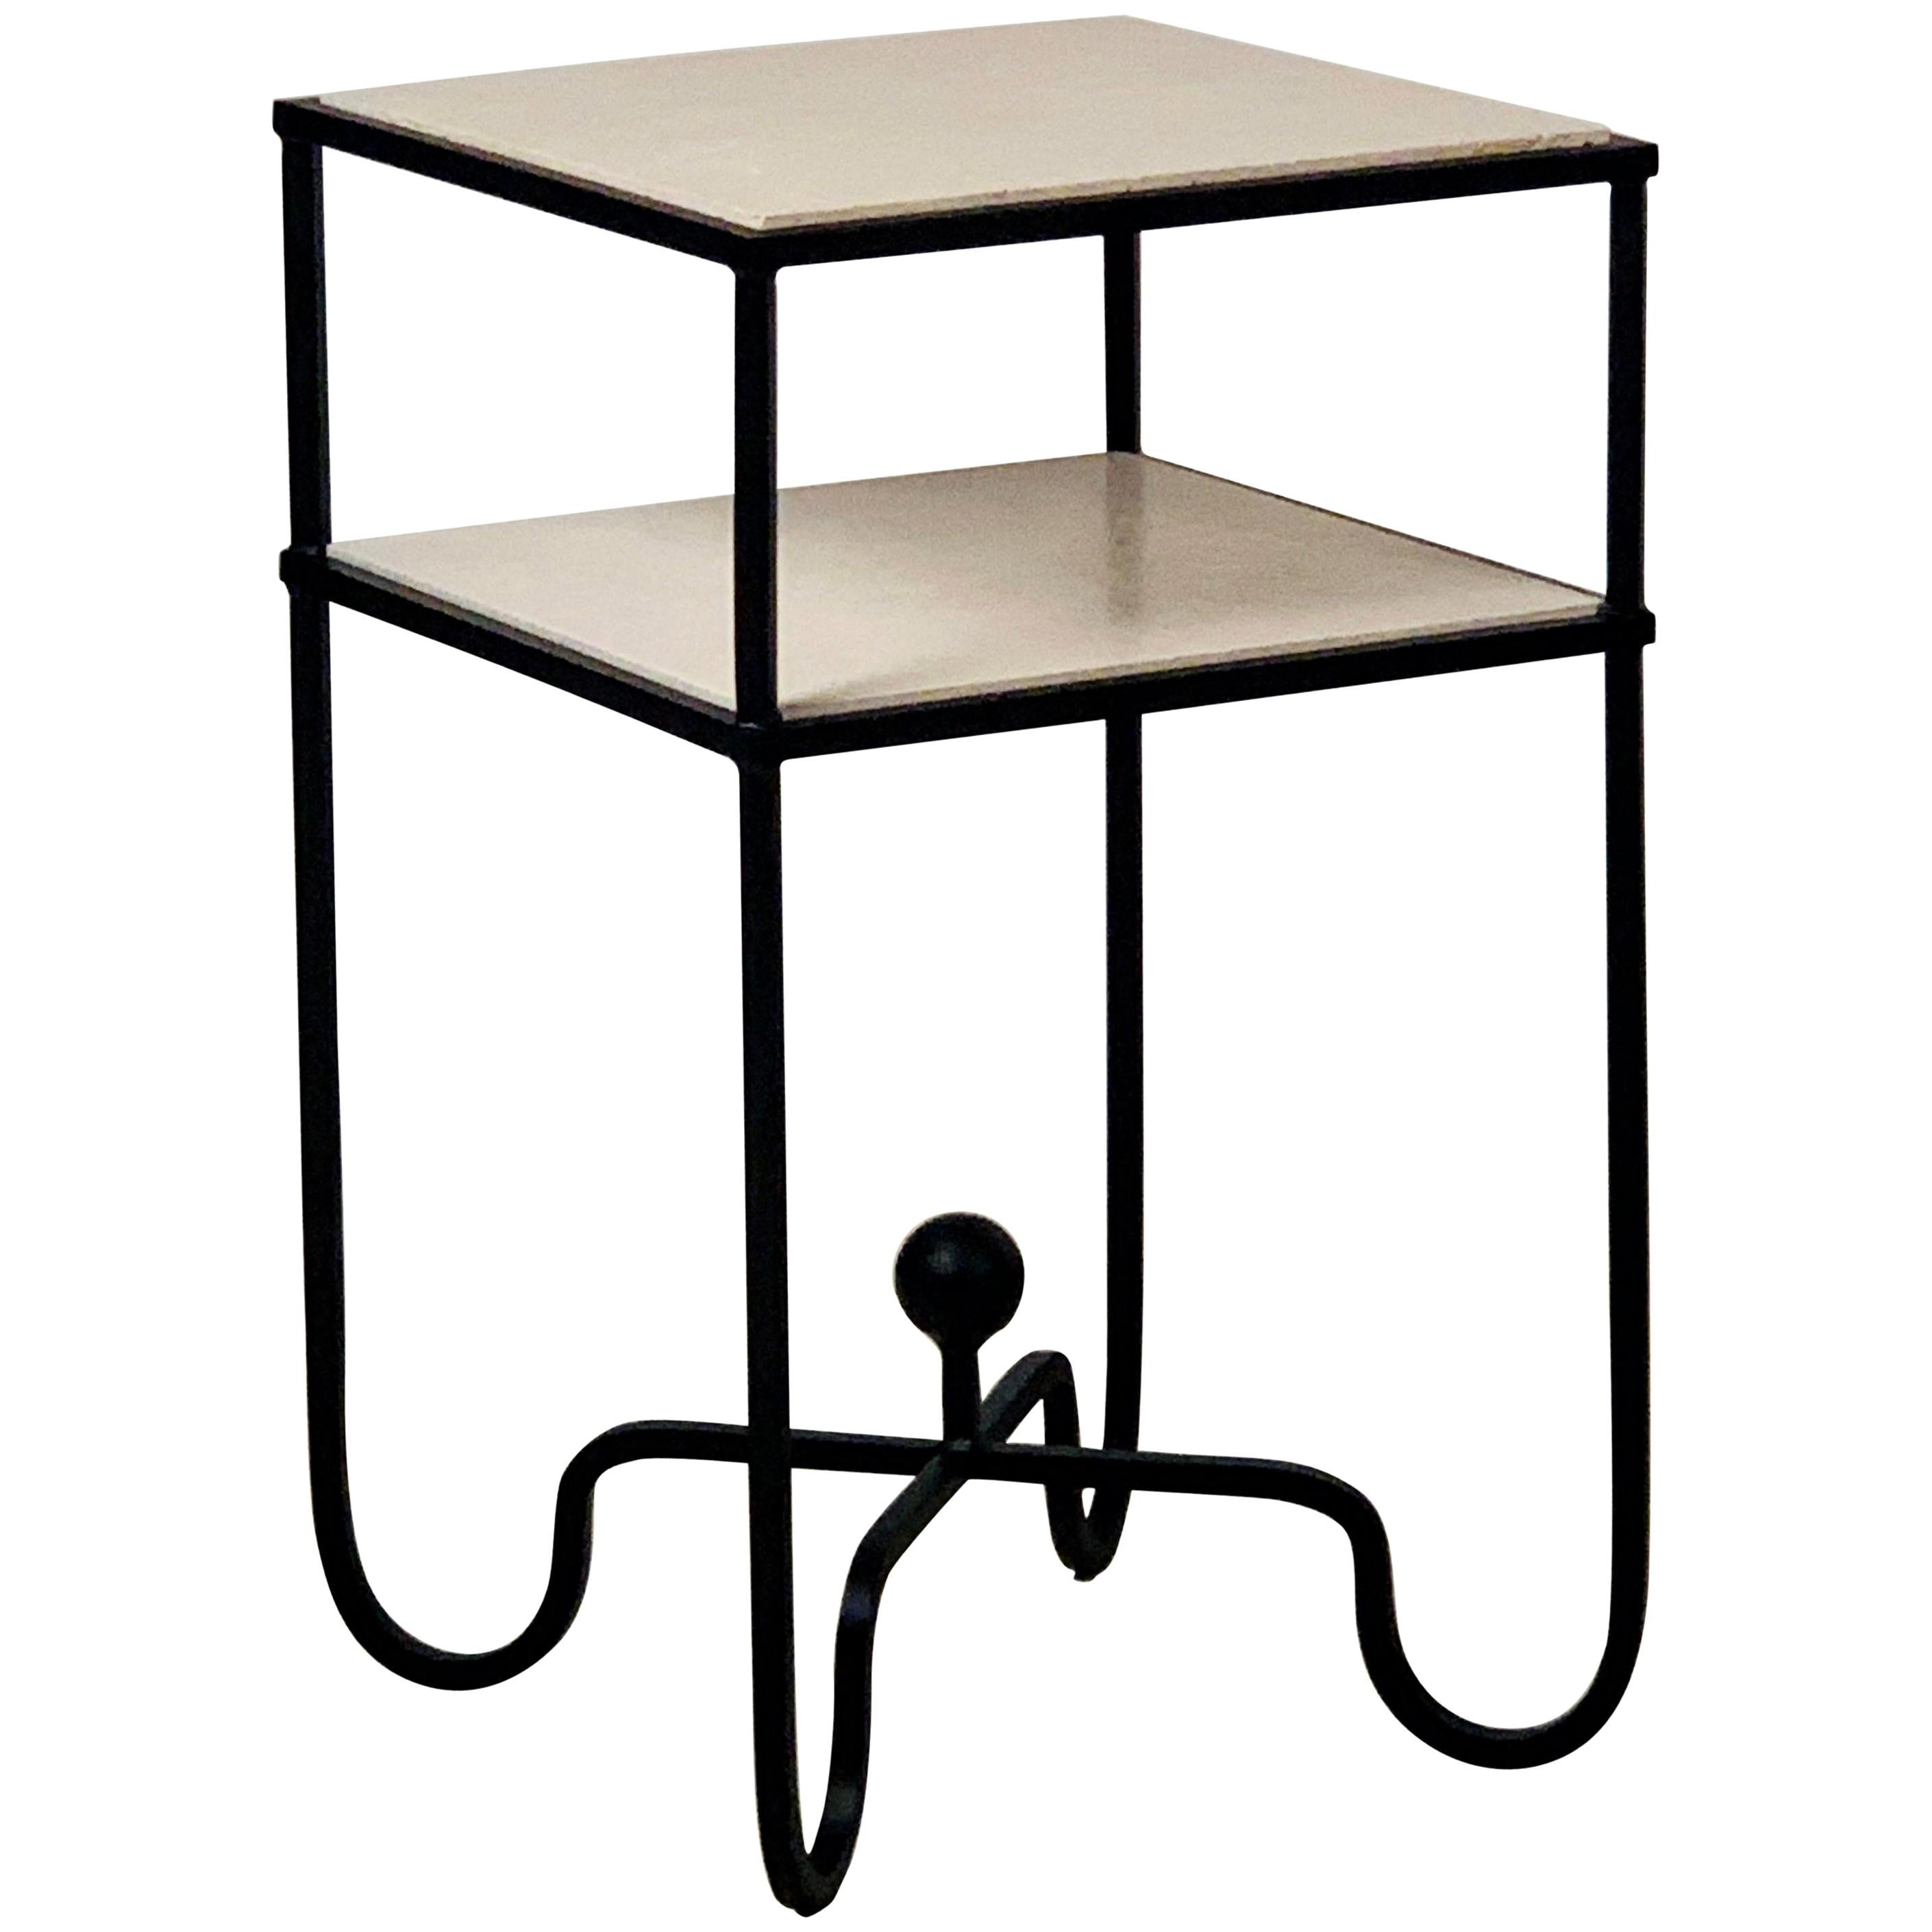 2-Tier Entretoise Side Table by Design Frères